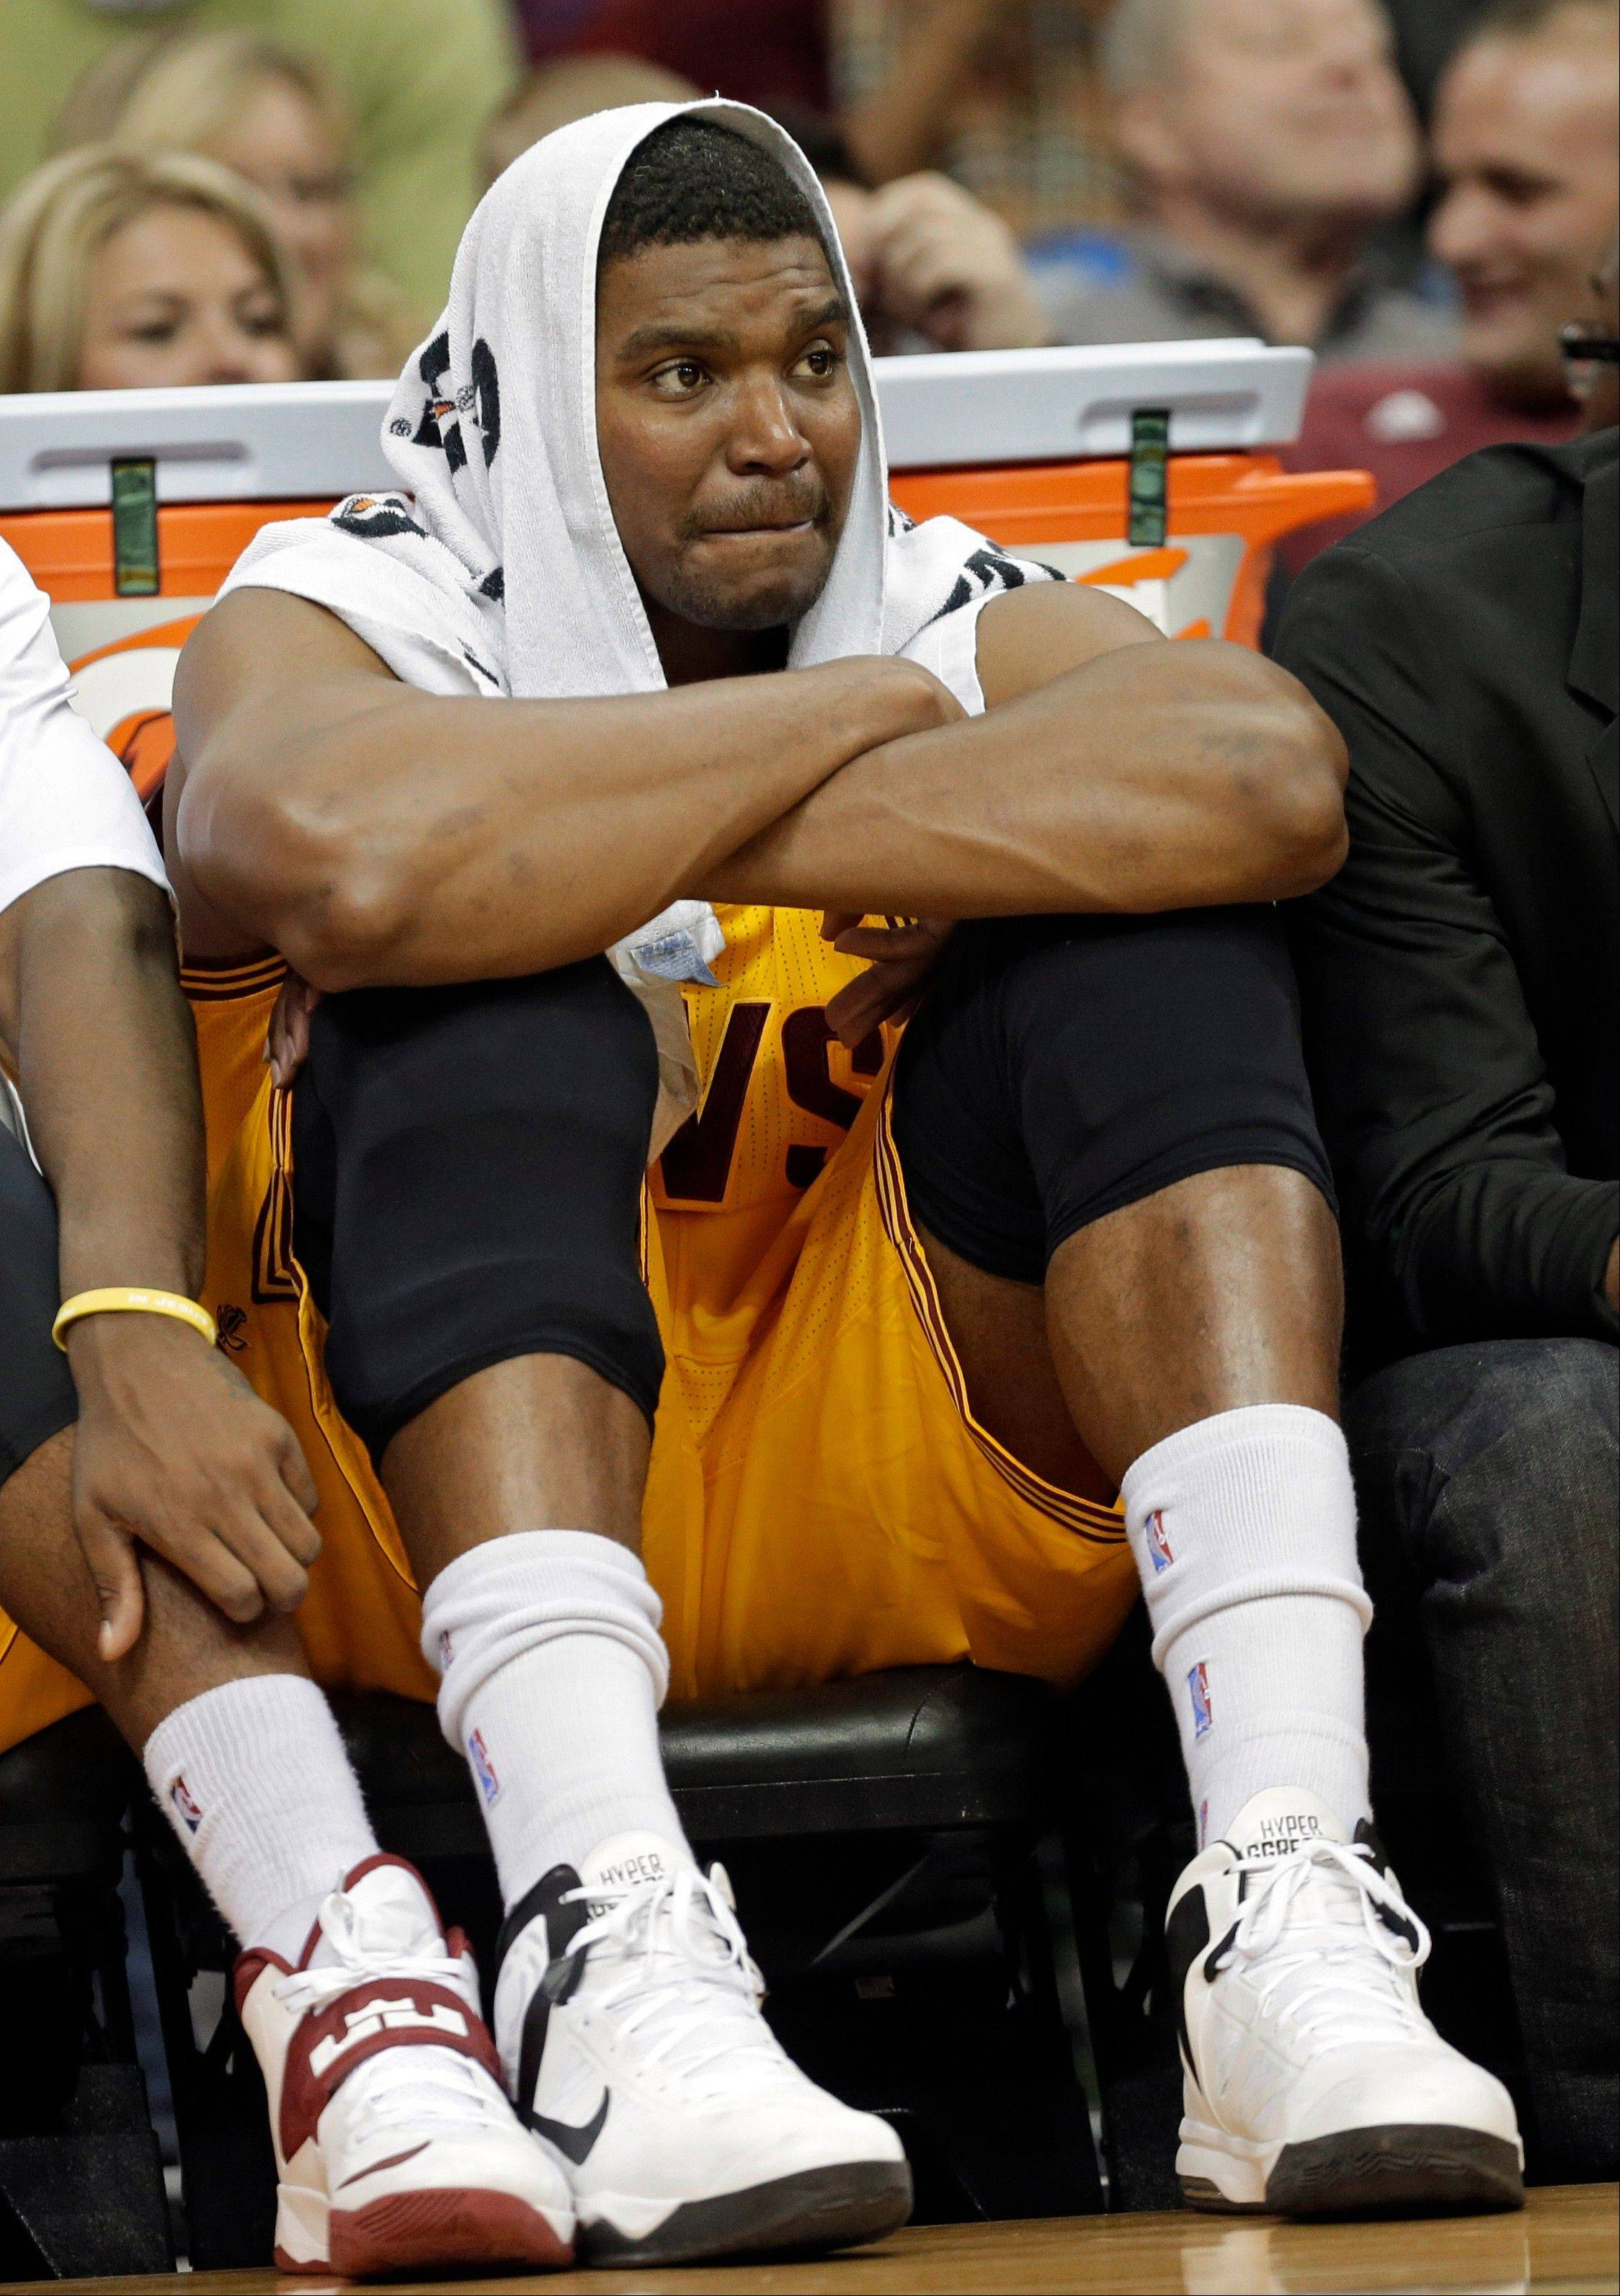 Associated Press In this Nov. 20 photo, Cleveland Cavaliers' Andrew Bynum watches form the bench during an NBA basketball game against the Washington Wizards in Cleveland. Bynum has been suspended indefinitely from the team for detrimental conduct and banned from all team activities. Bynum, who signed a two-year, $12 million contract with the Cavs this summer, did not travel with the team to Boston for Saturday's game.